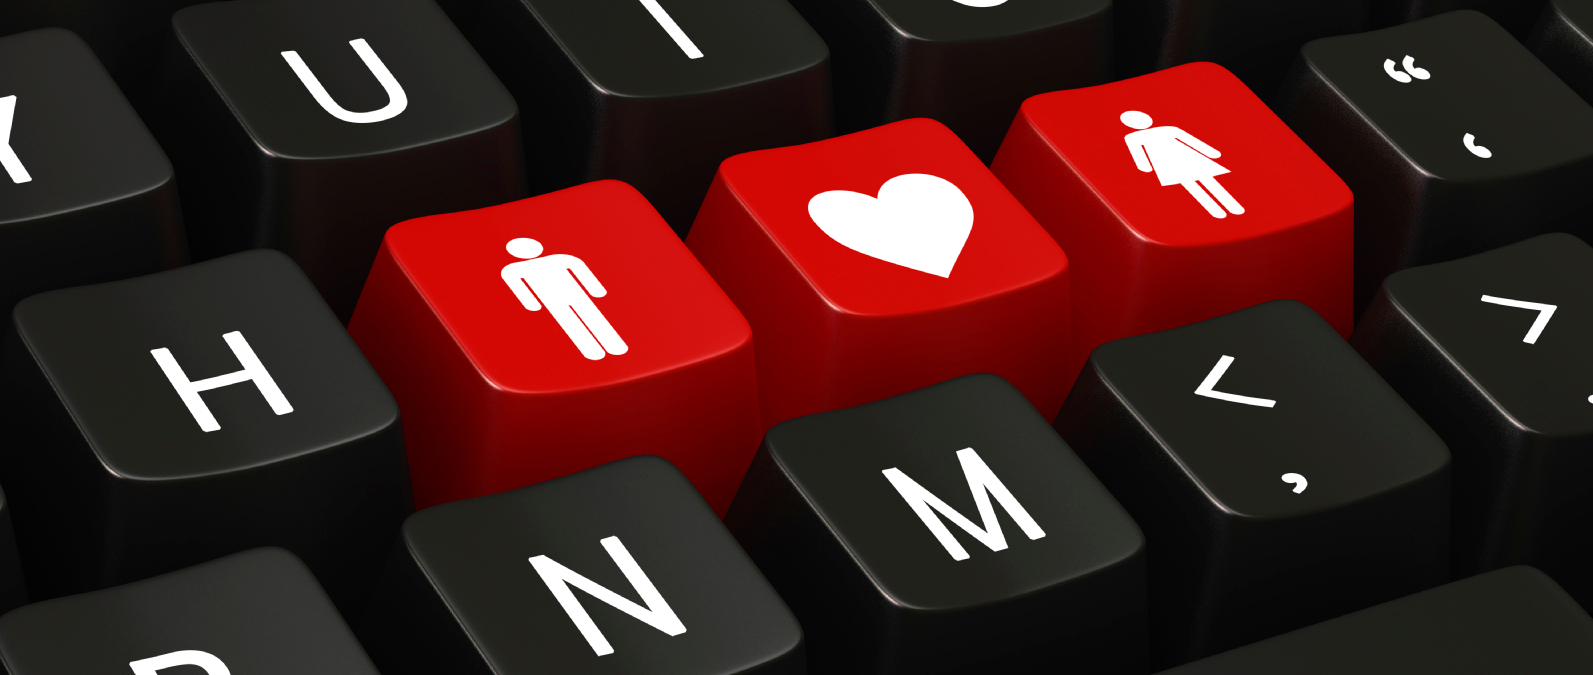 ochopee online hookup & dating When you aren't looking for a relationship, online dating can be tricky - unless you're equipped with these 10 hookup websites and apps.